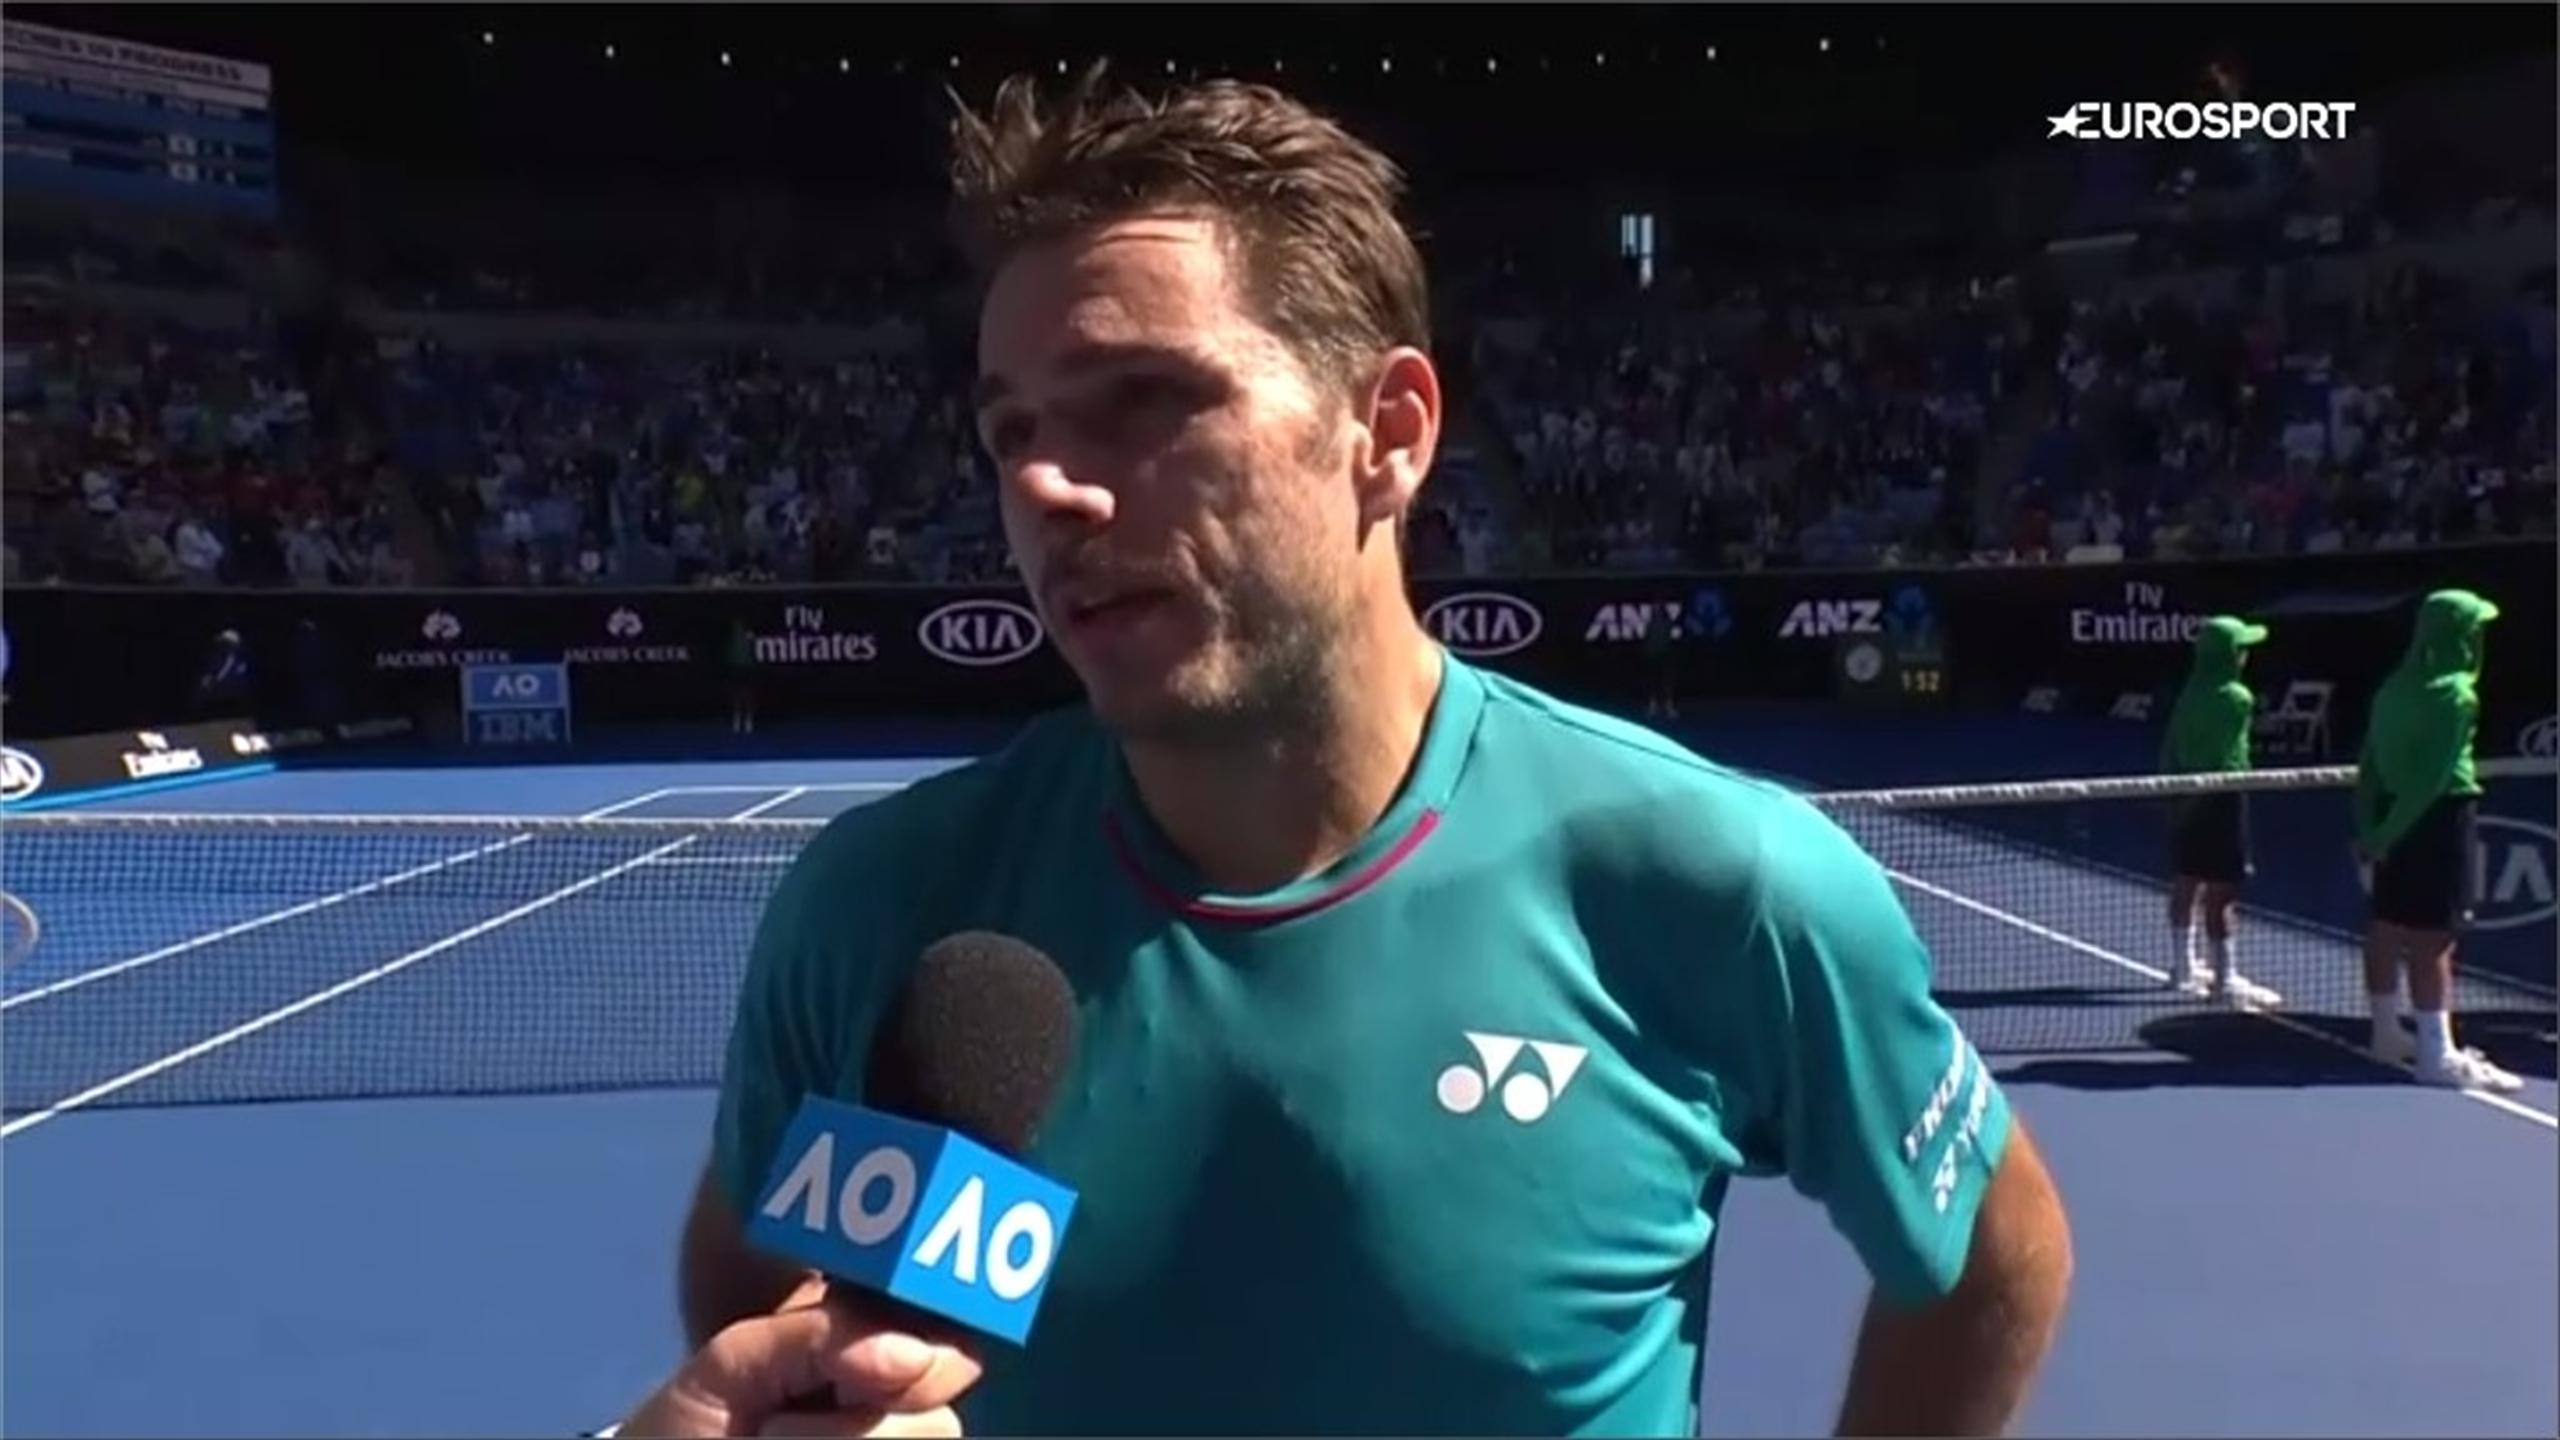 Stanislas Wawrinka chats after his latest win at the Australian Open